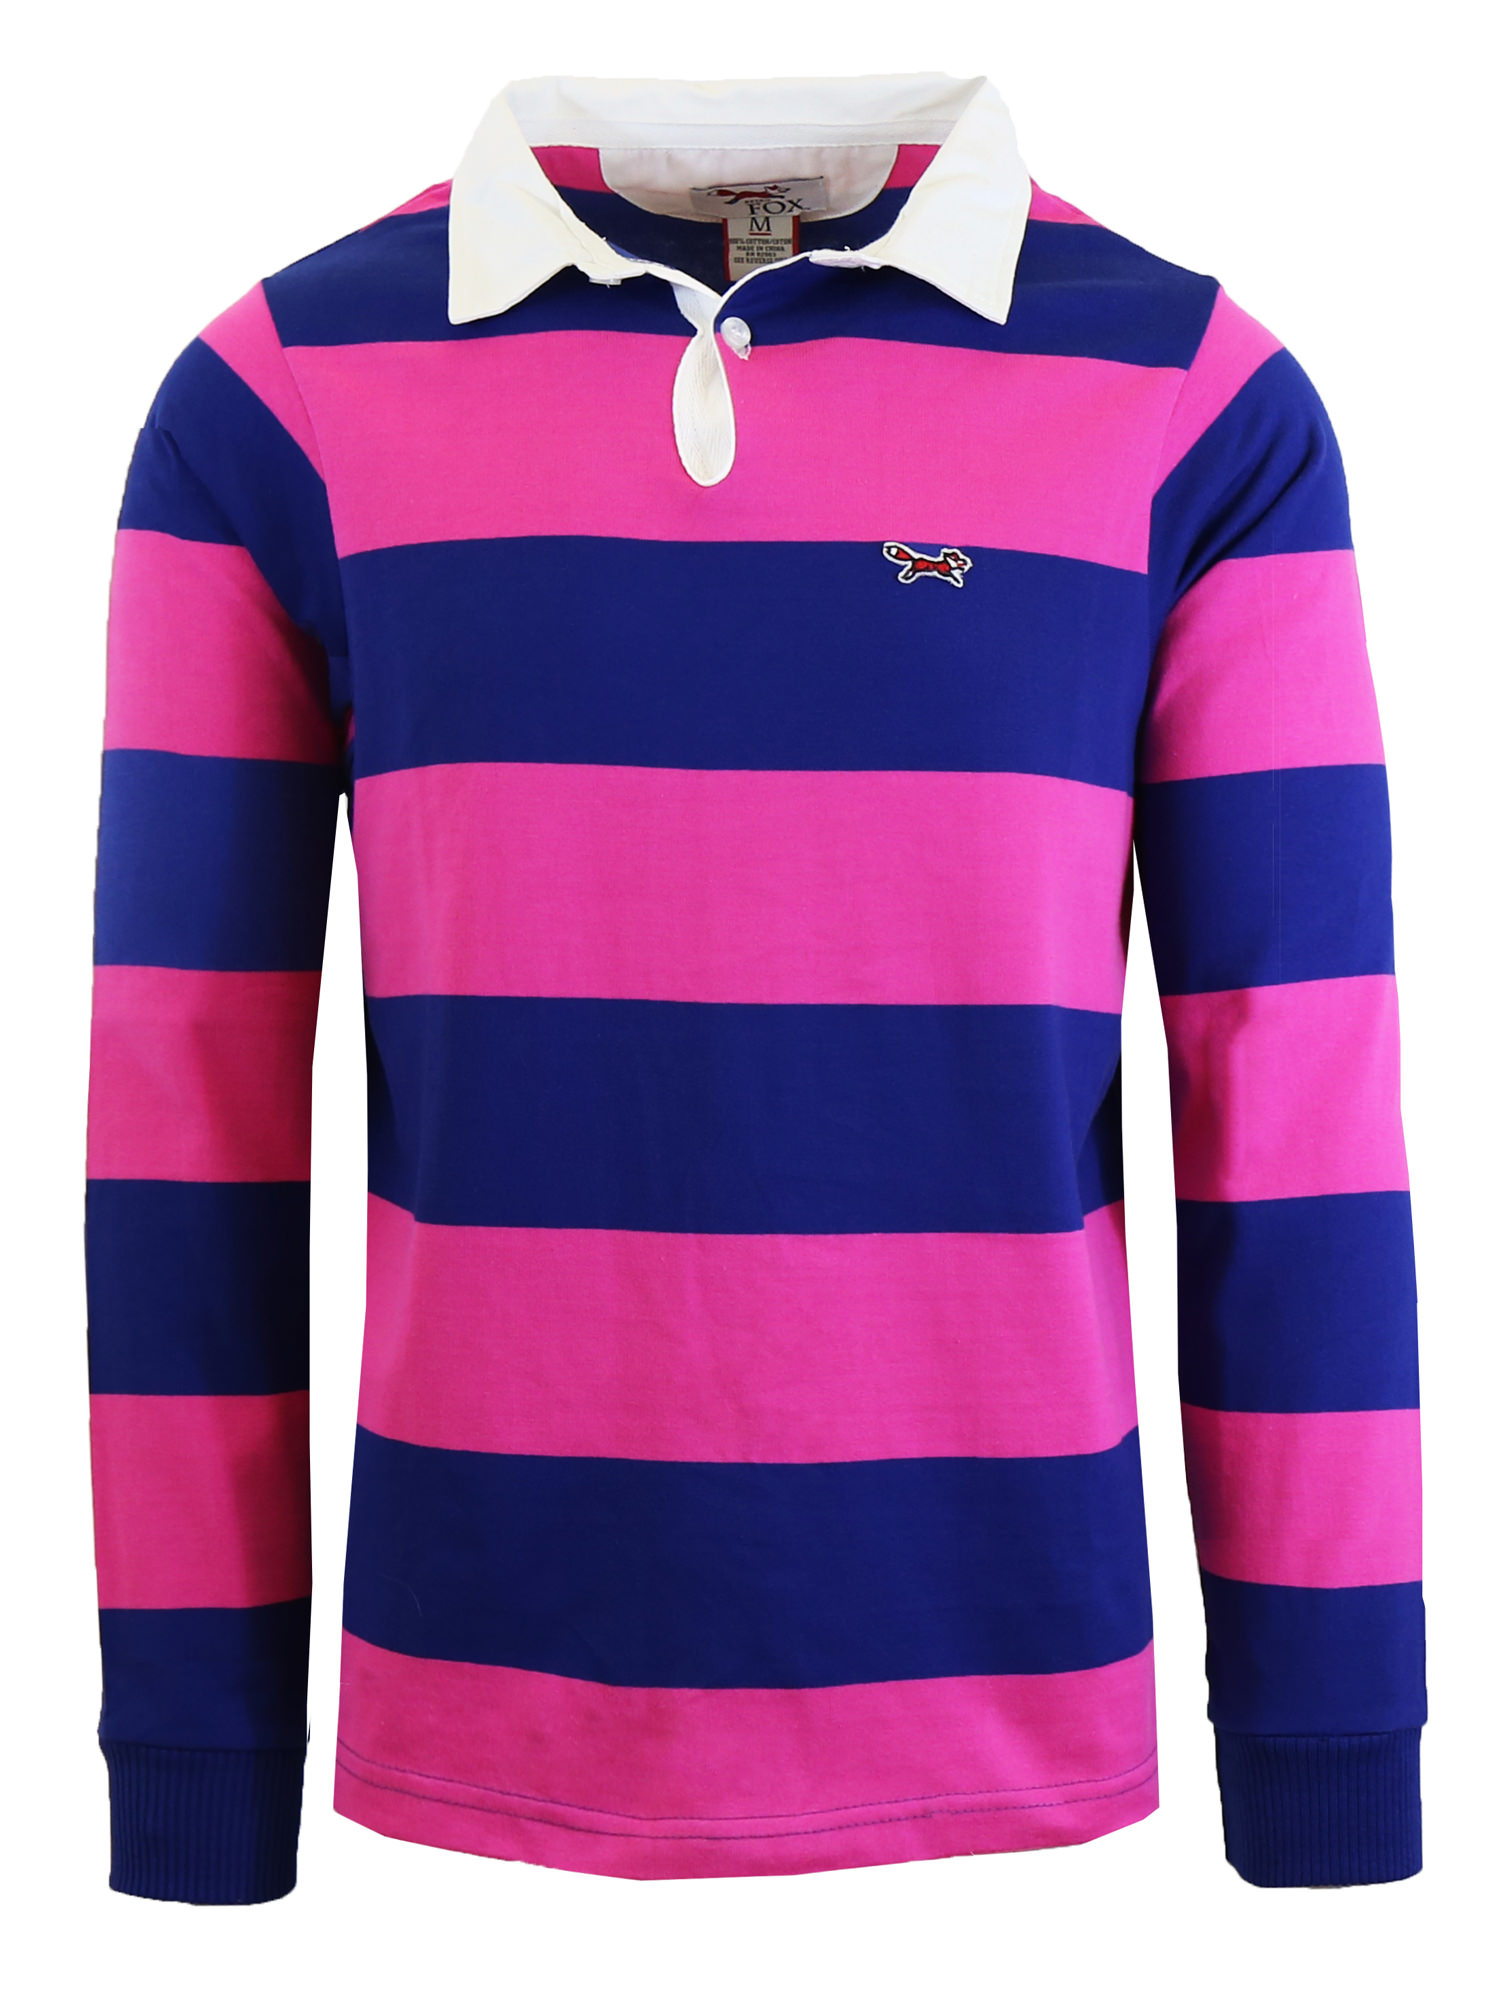 Mens Long Sleeve Cotton Striped Fitted Polo Shirts